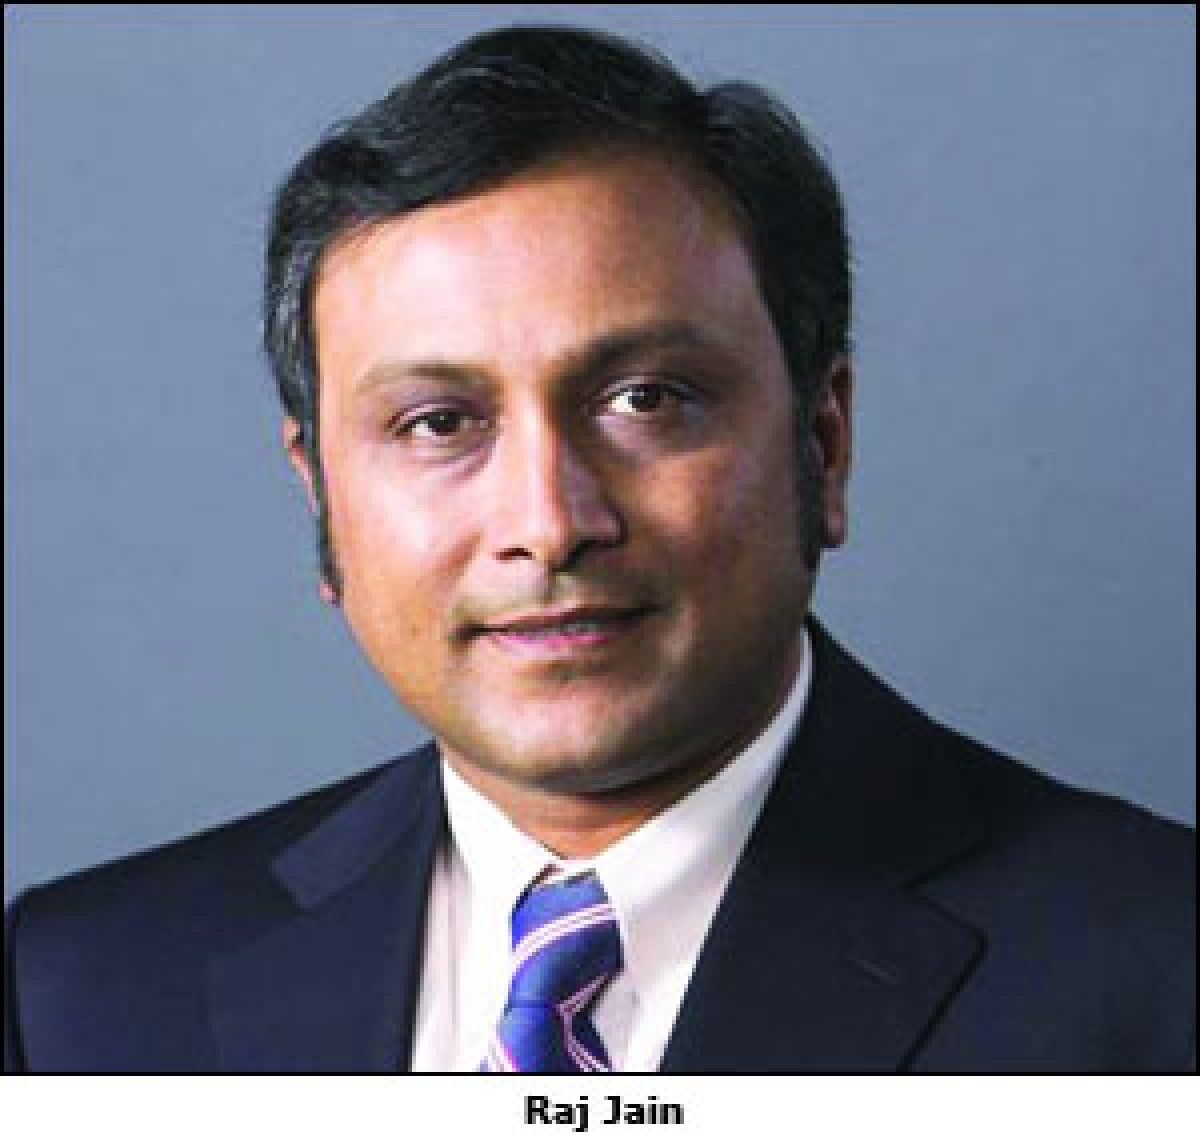 Raj Jain Assumes Office as CEO of BCCL